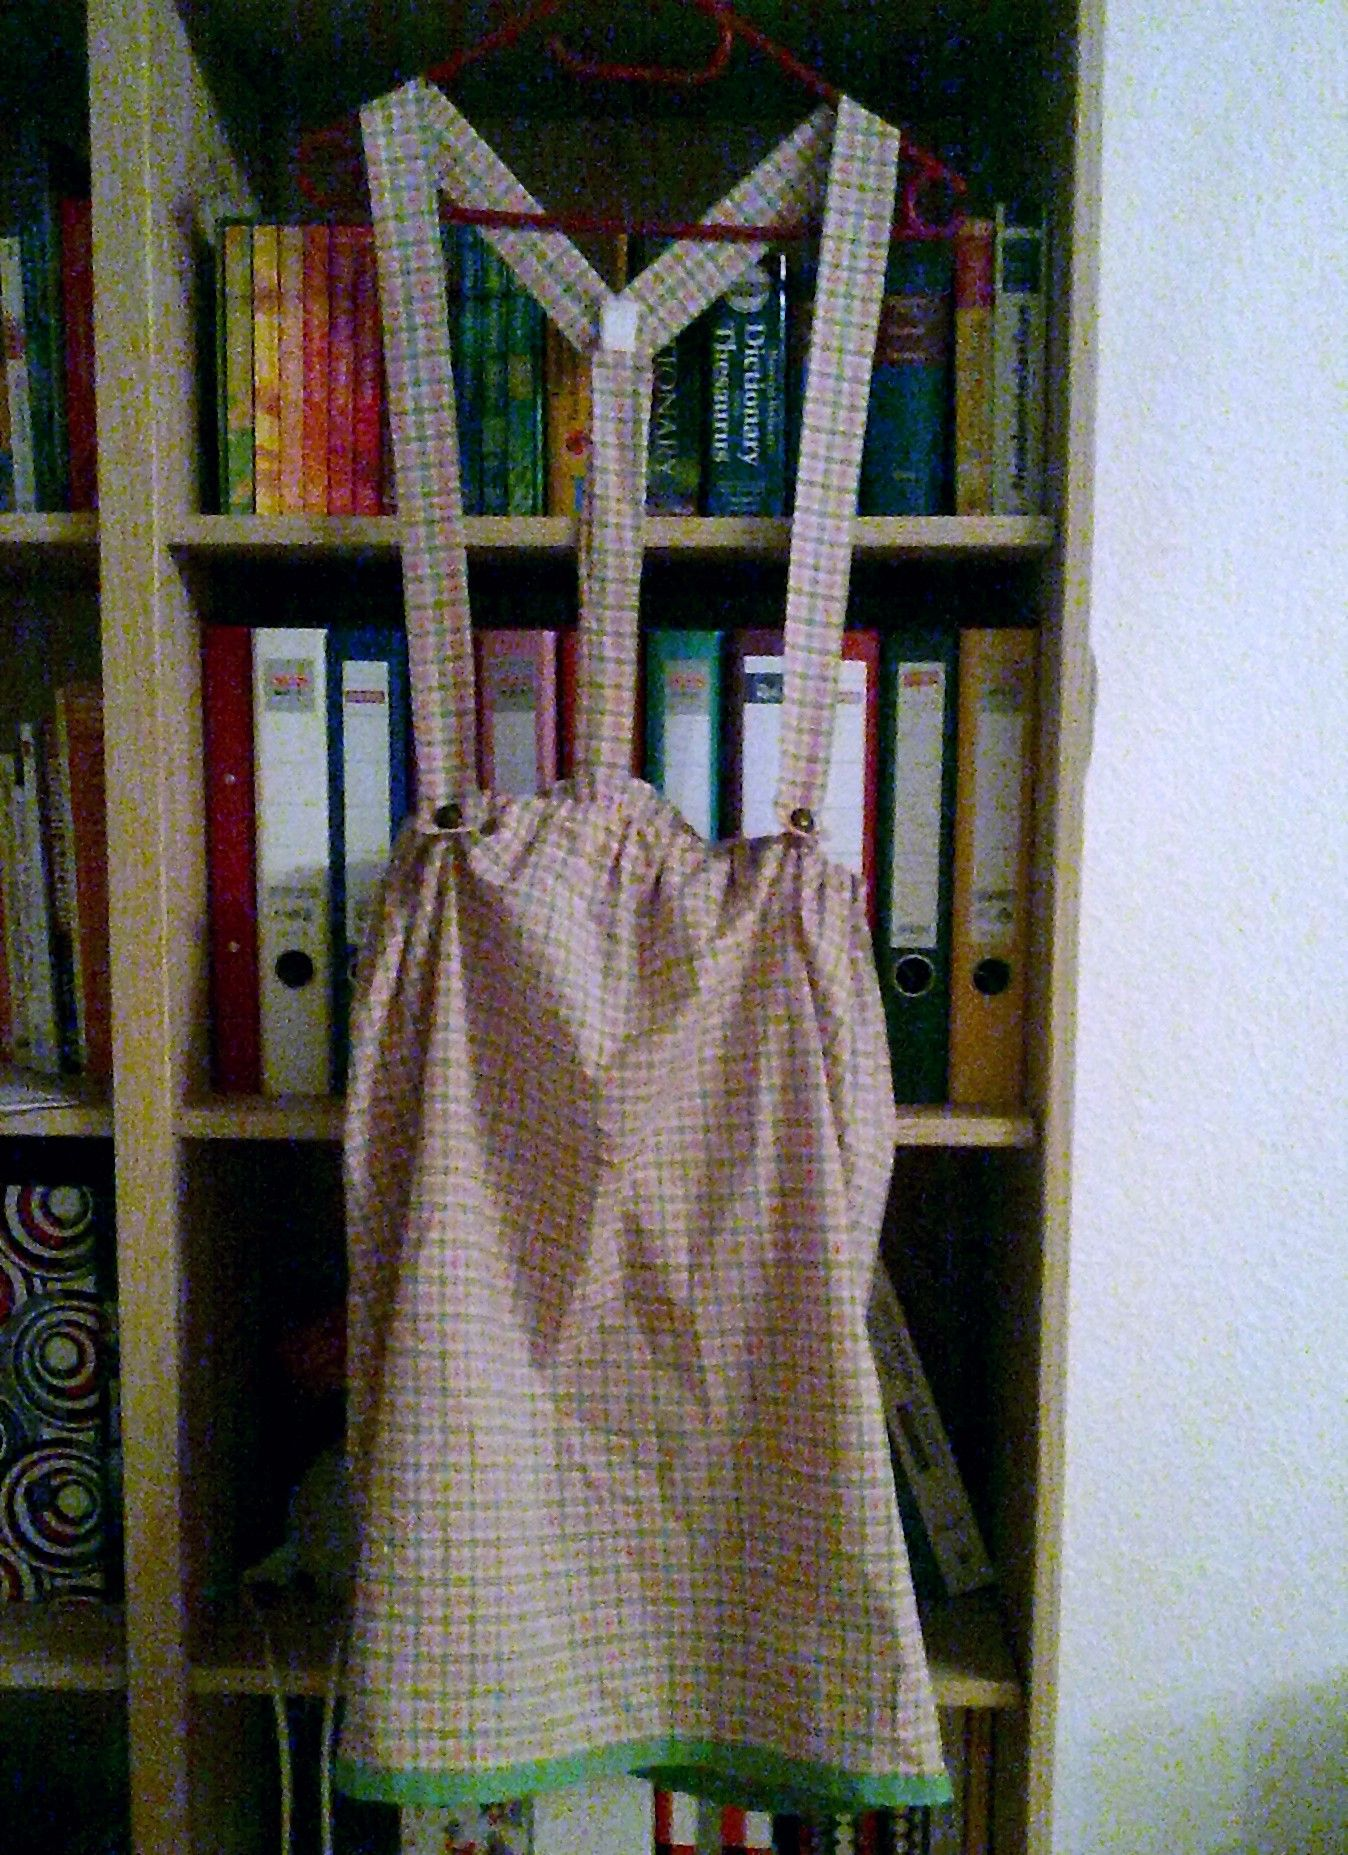 And the next hand-sewn project: Gathered skirt and matching cloth suspenders. =D